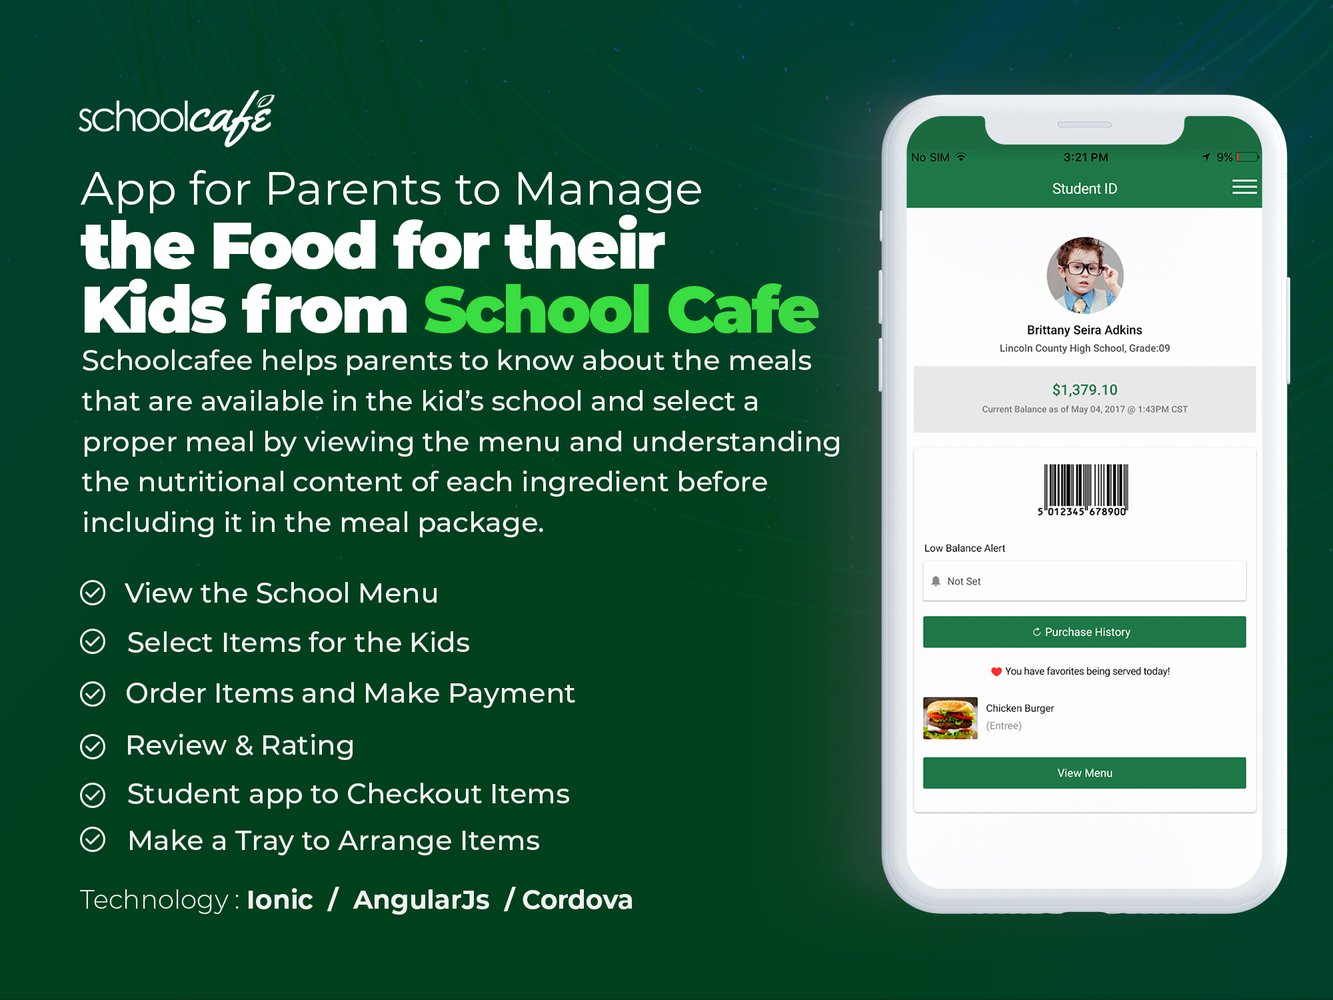 App for Parents to Manage the Food for their Kids from School Cafe